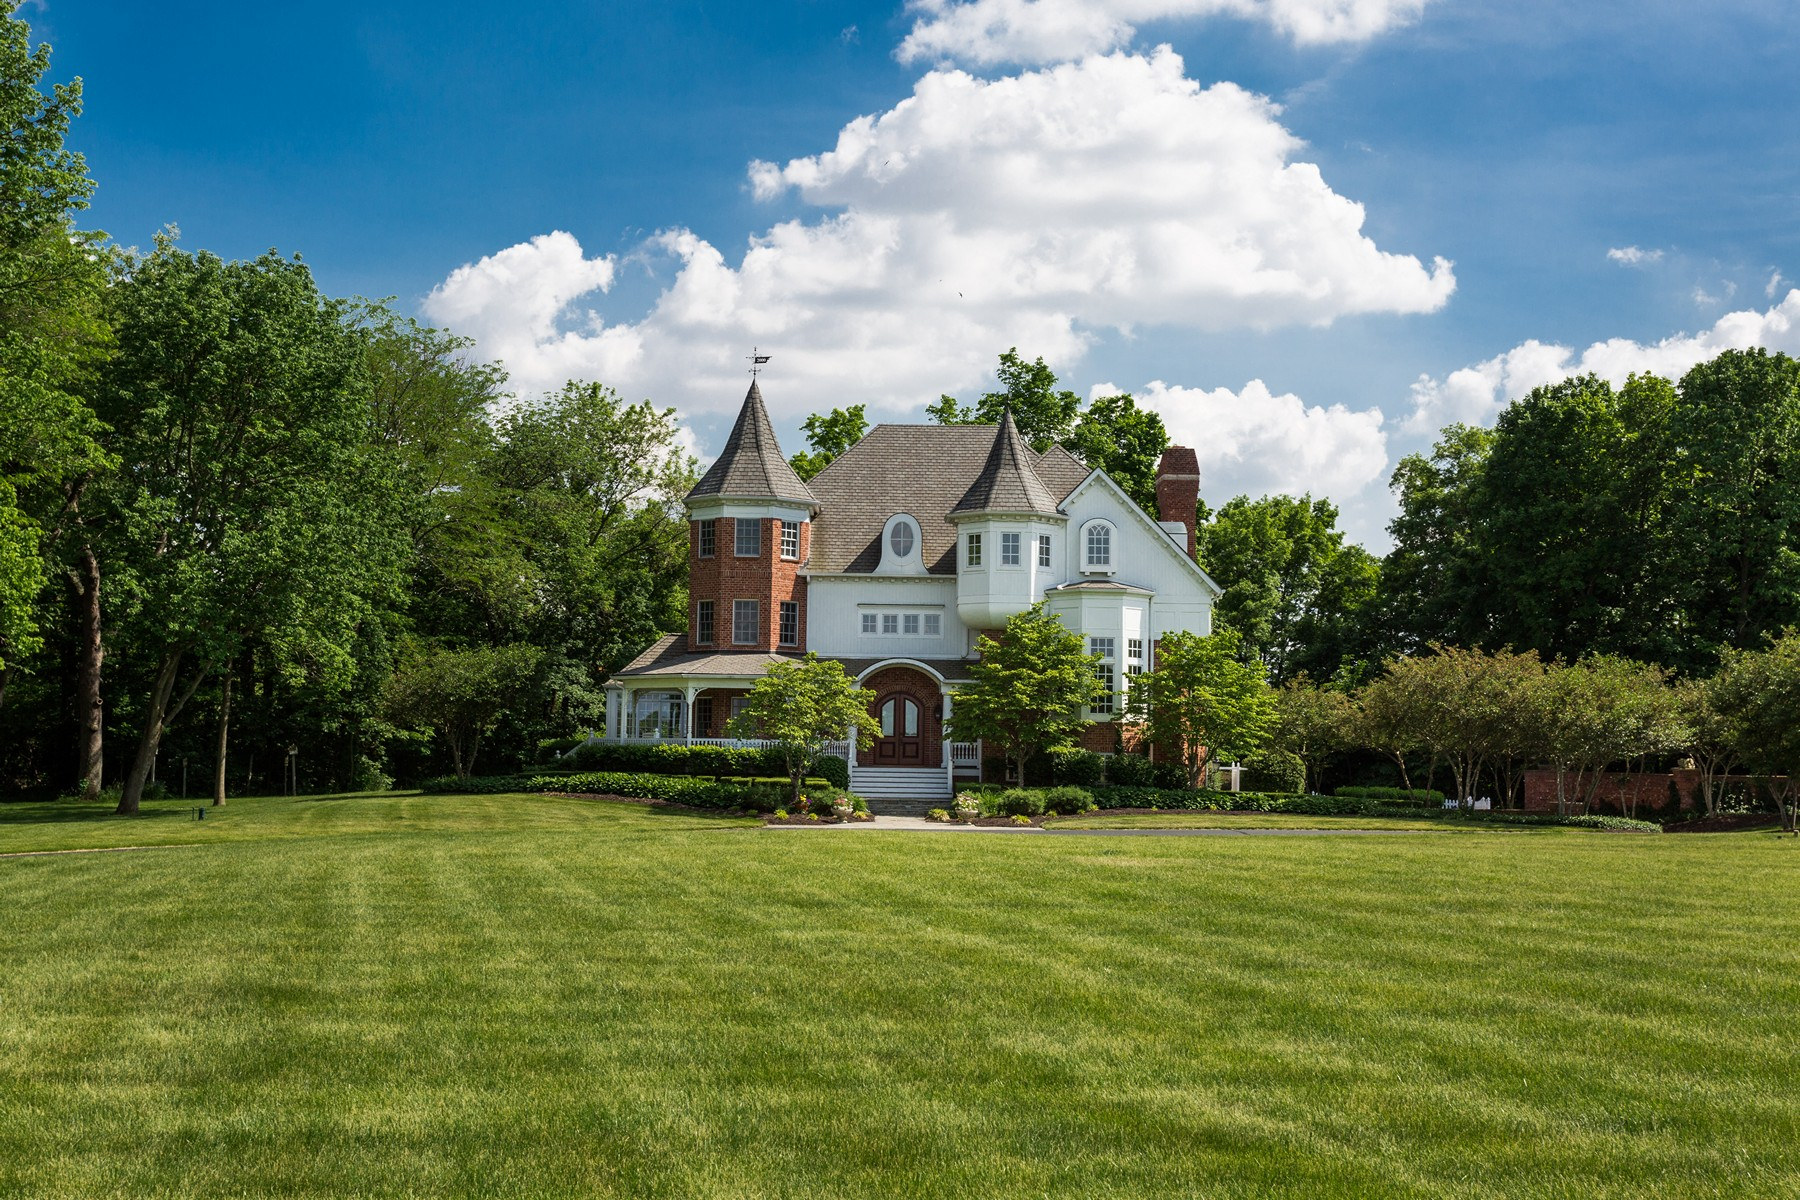 Property For Sale at Elegant Home on 22 Acres